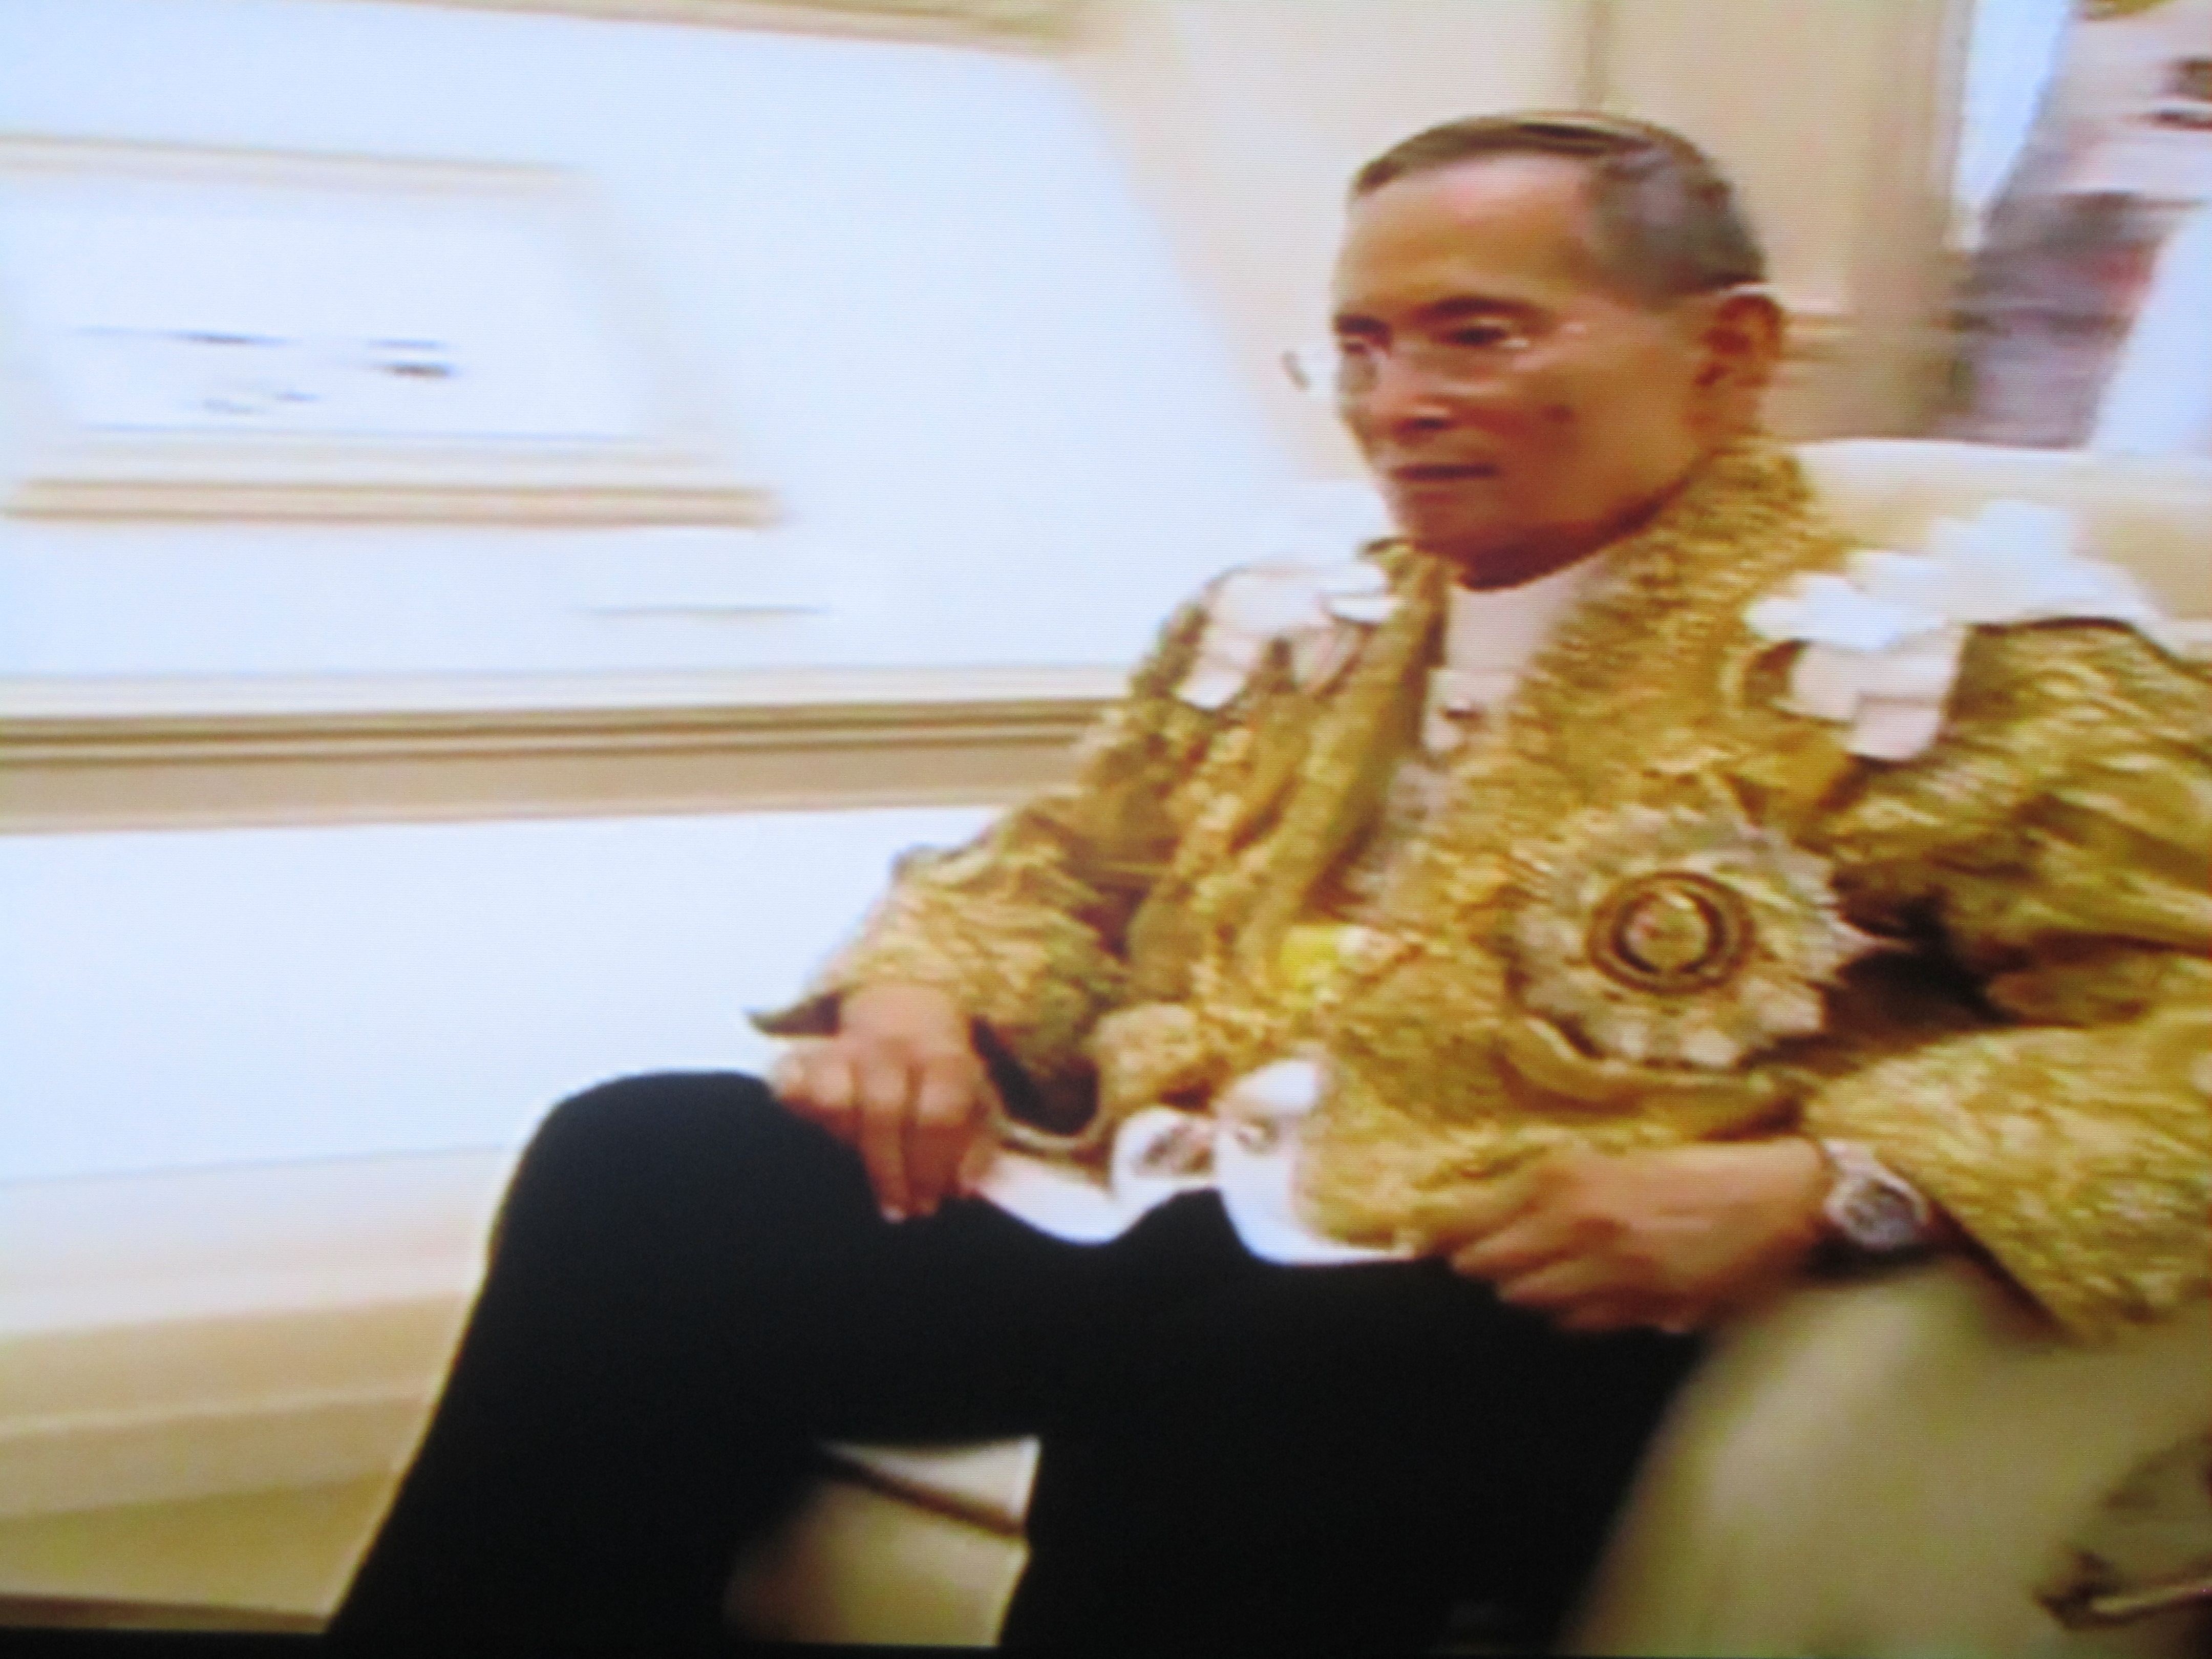 King Bhumibol dressed in traditional yellow just after addressing Thailand